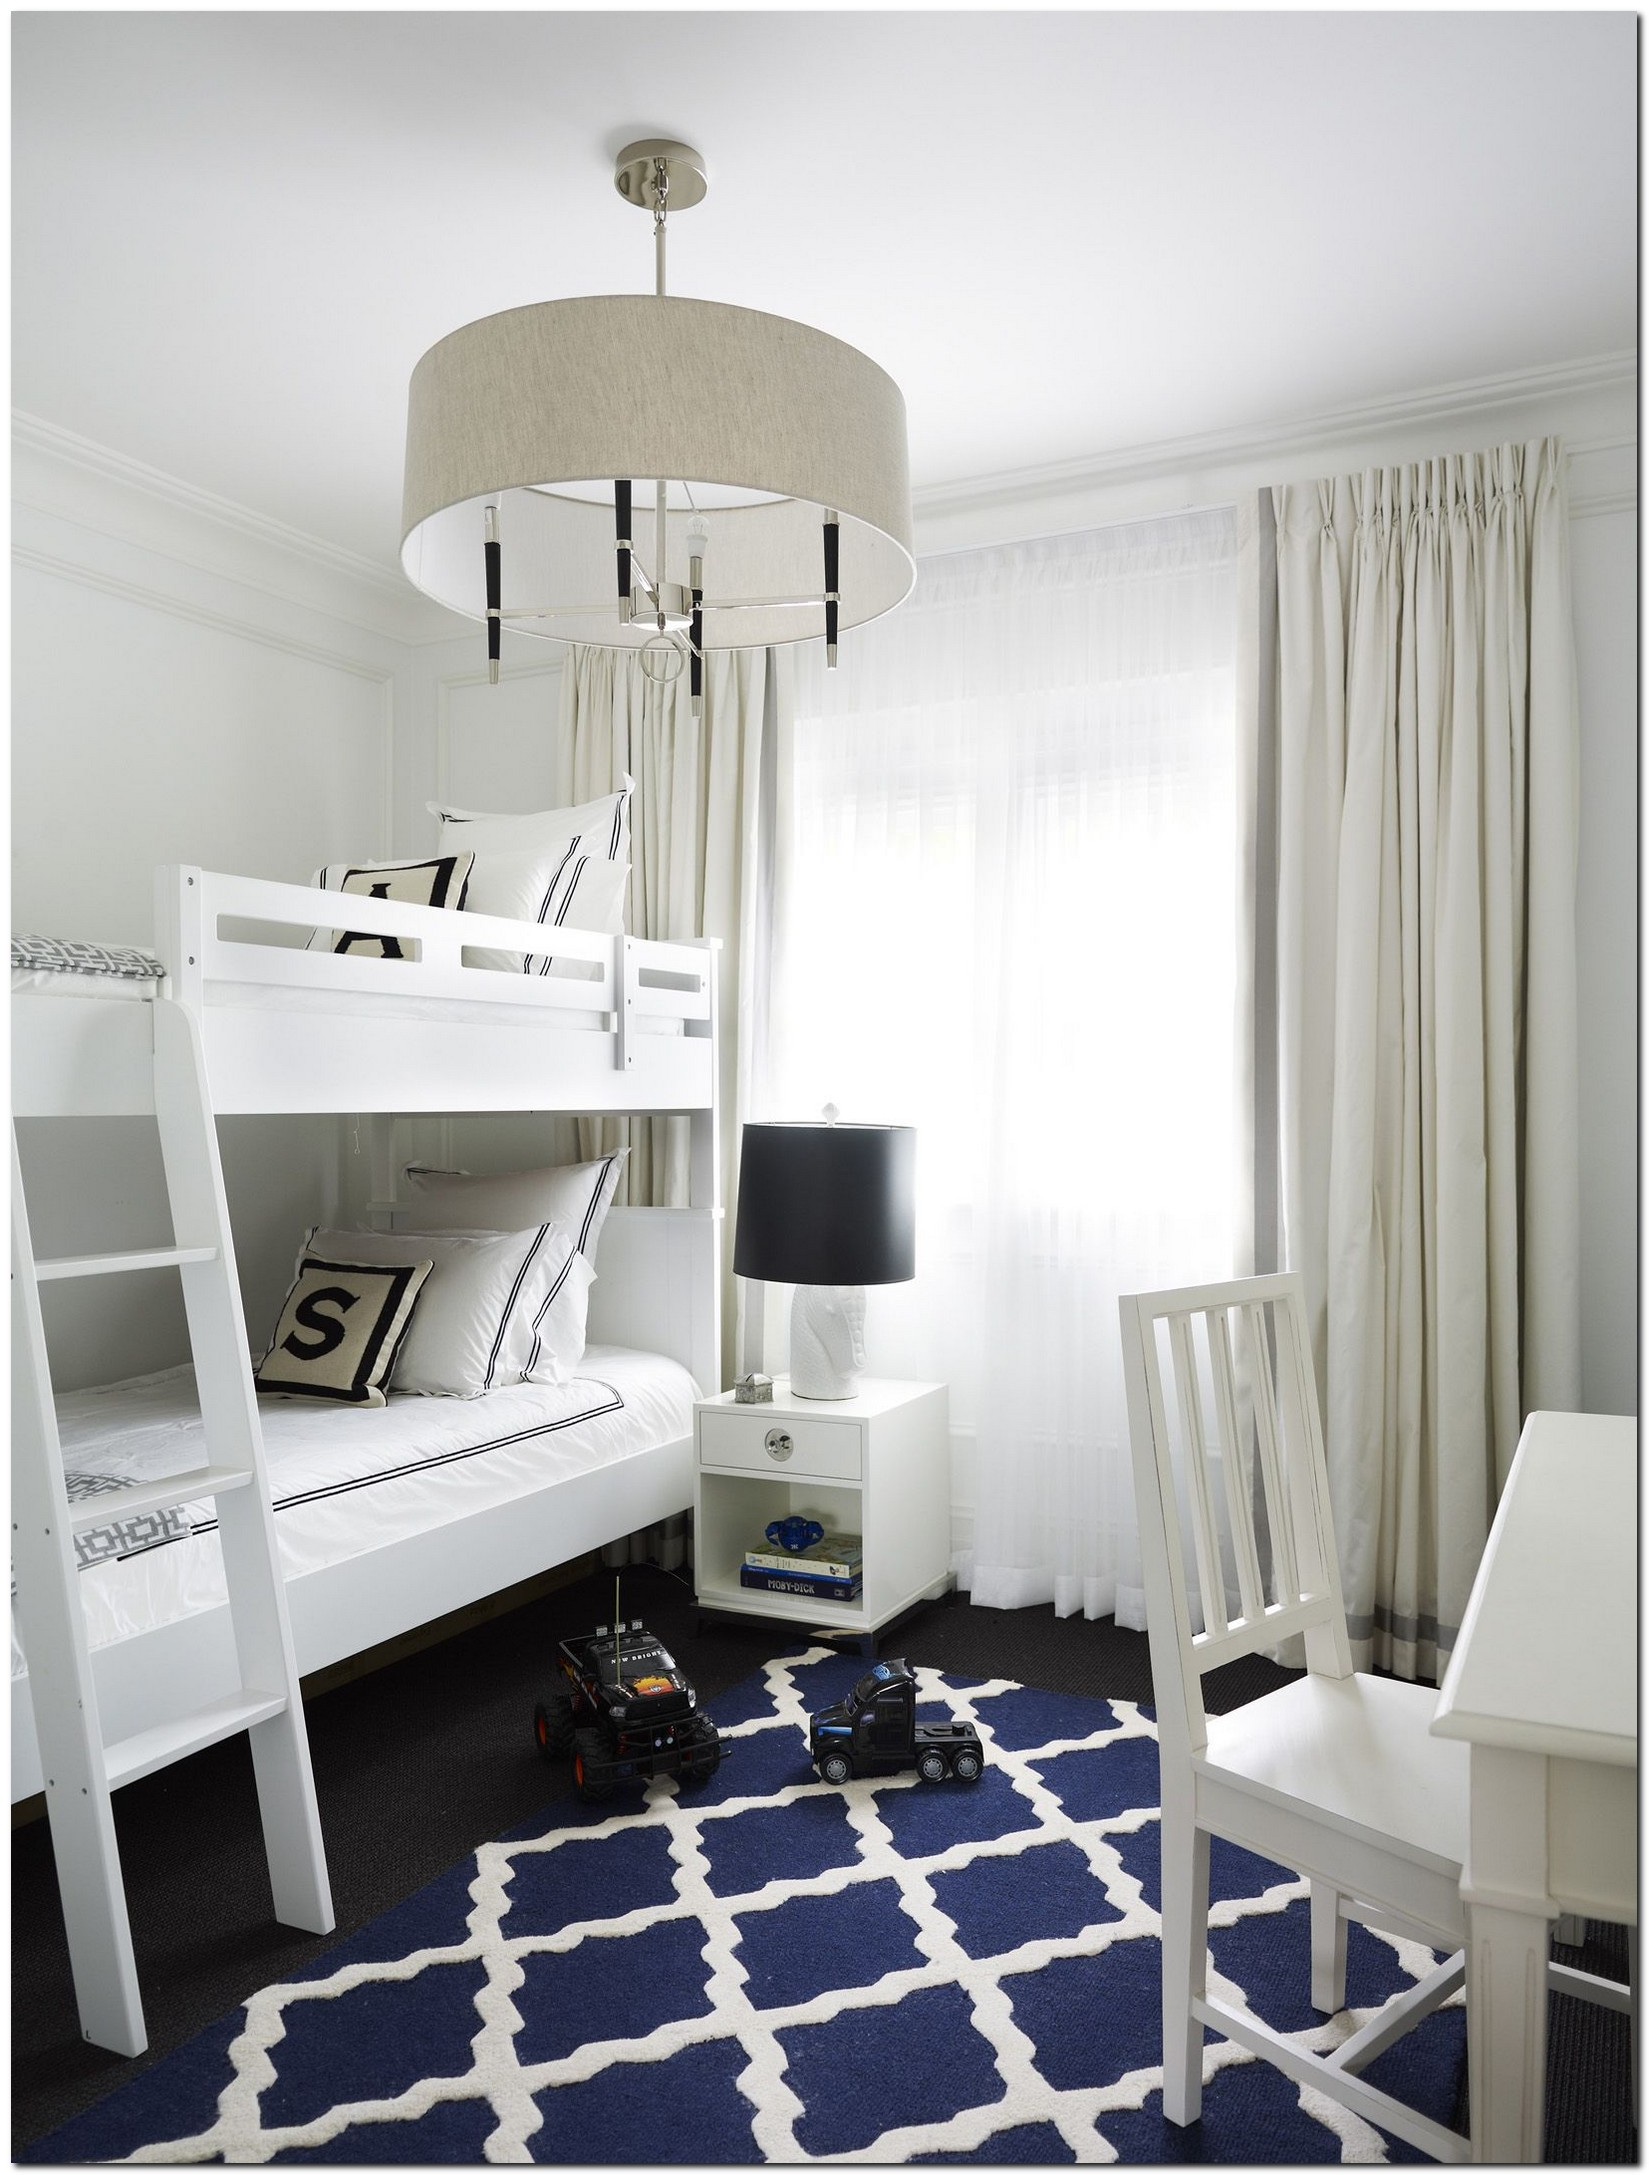 Futon bunk beds for kids 6